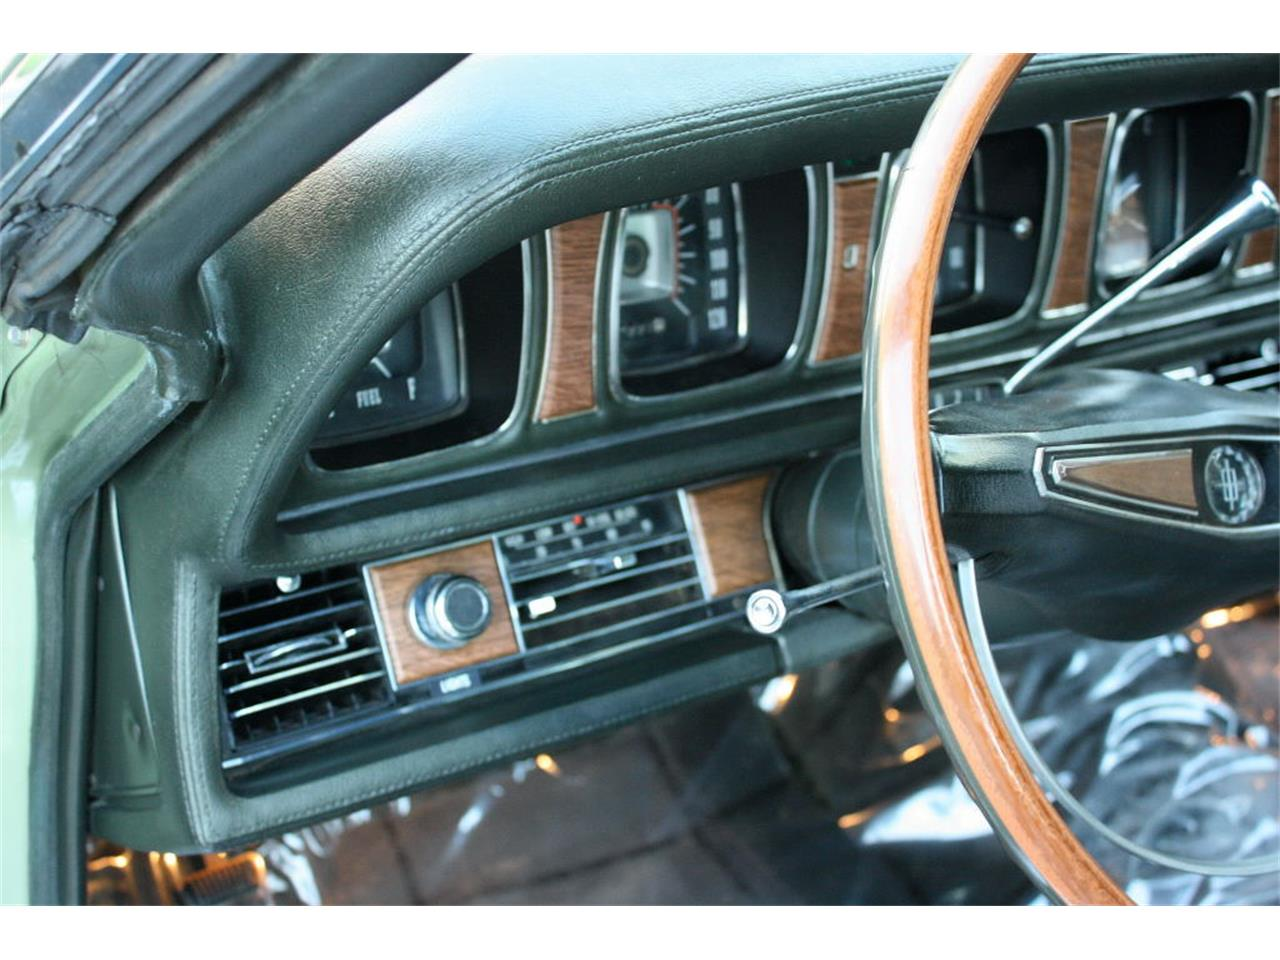 Large Picture of Classic 1969 Lincoln Continental Mark III located in Lakeland Florida - $24,500.00 - OPDW